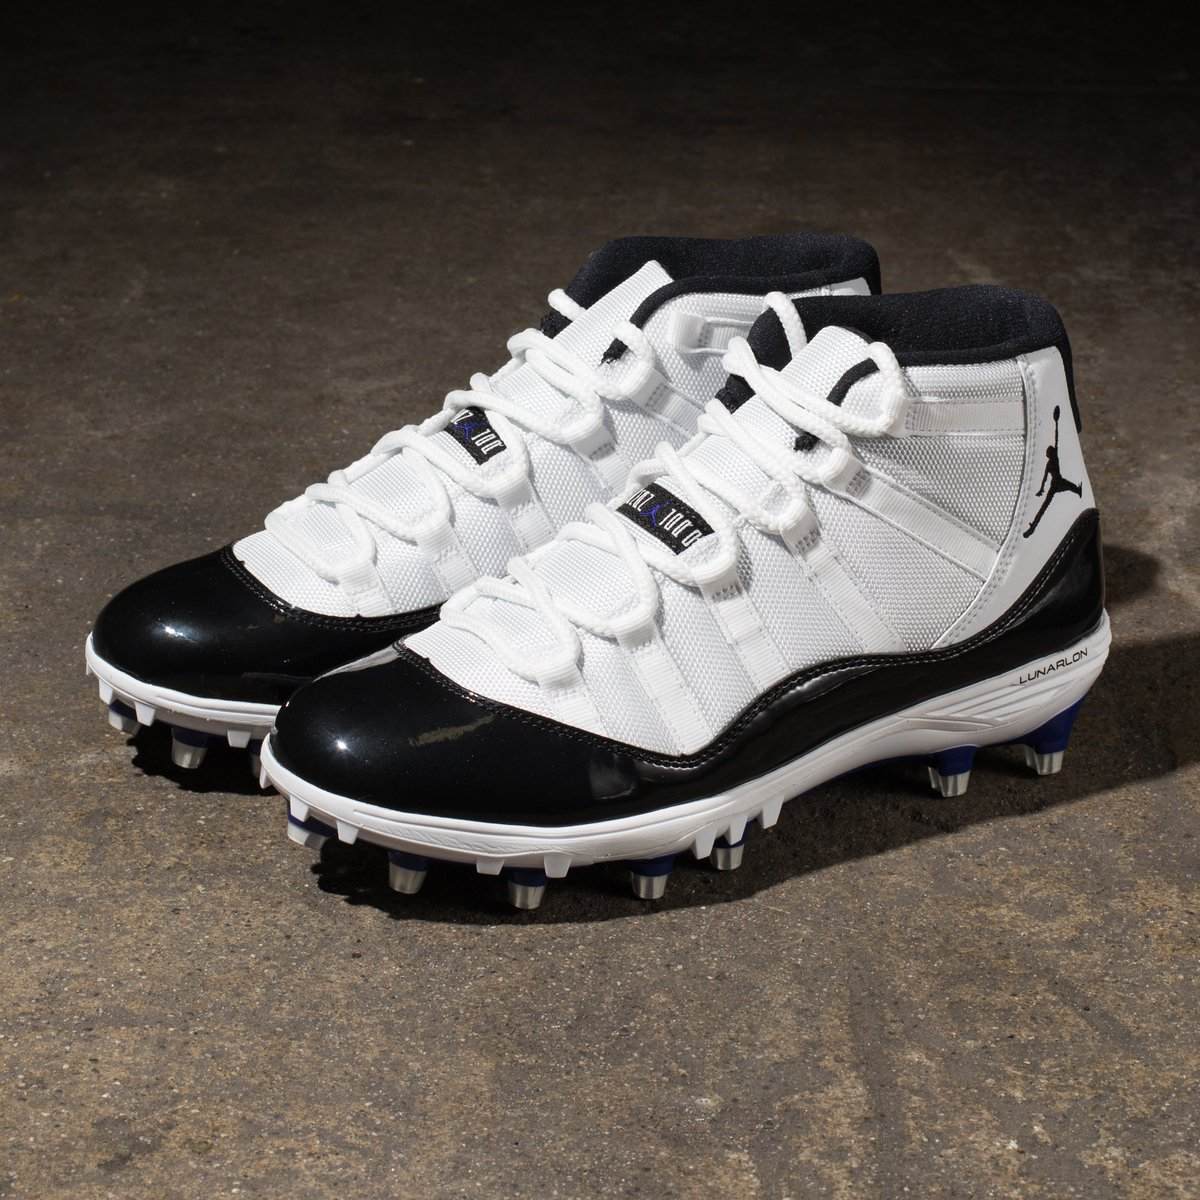 d3cb13027d3 Air Jordan XI Retro TD Cleat    Available now at Select Undefeated Chapter  Stores and http   Undefeated.com pic.twitter.com 71BhJQpszM